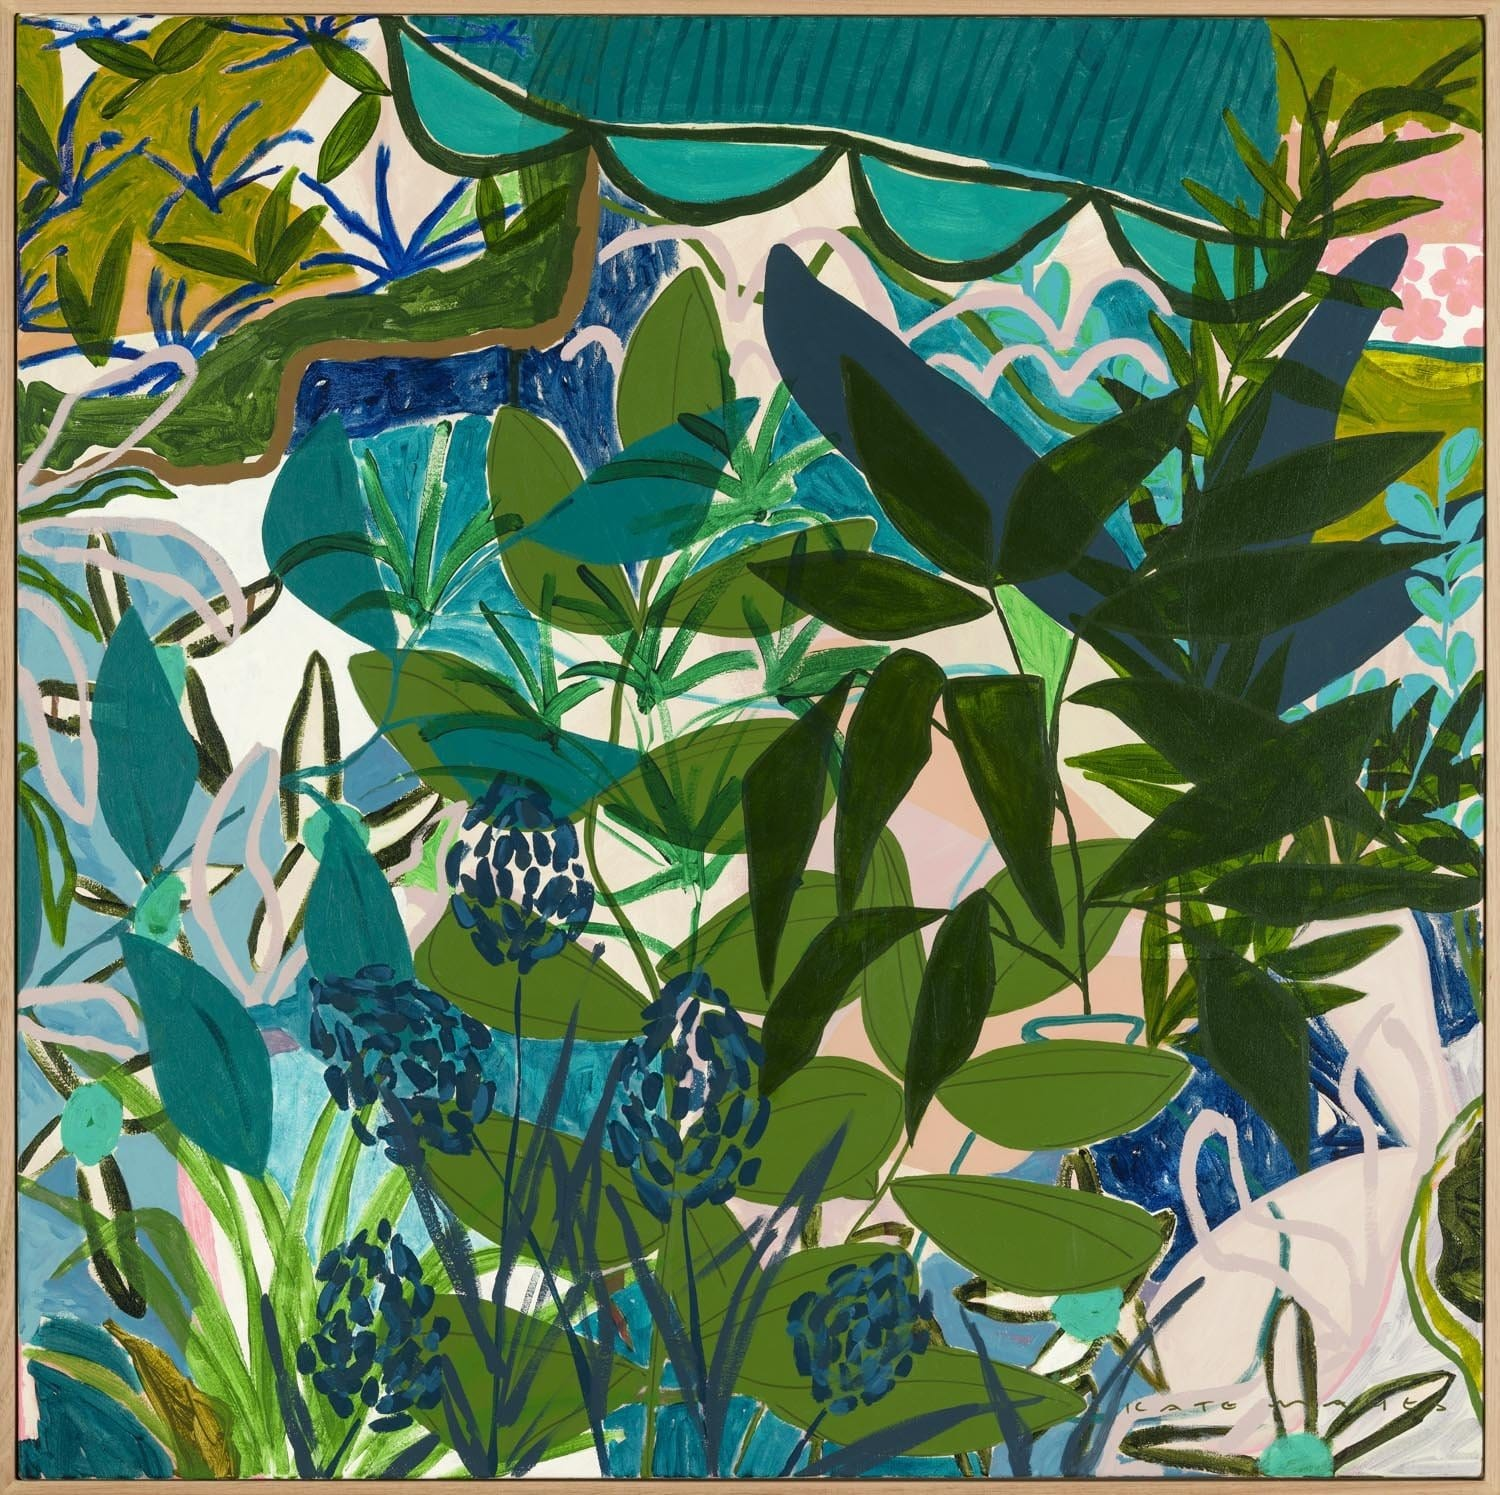 Opa -Limited Edition Print-Prints-Kate Mayes-Greenhouse Interiors